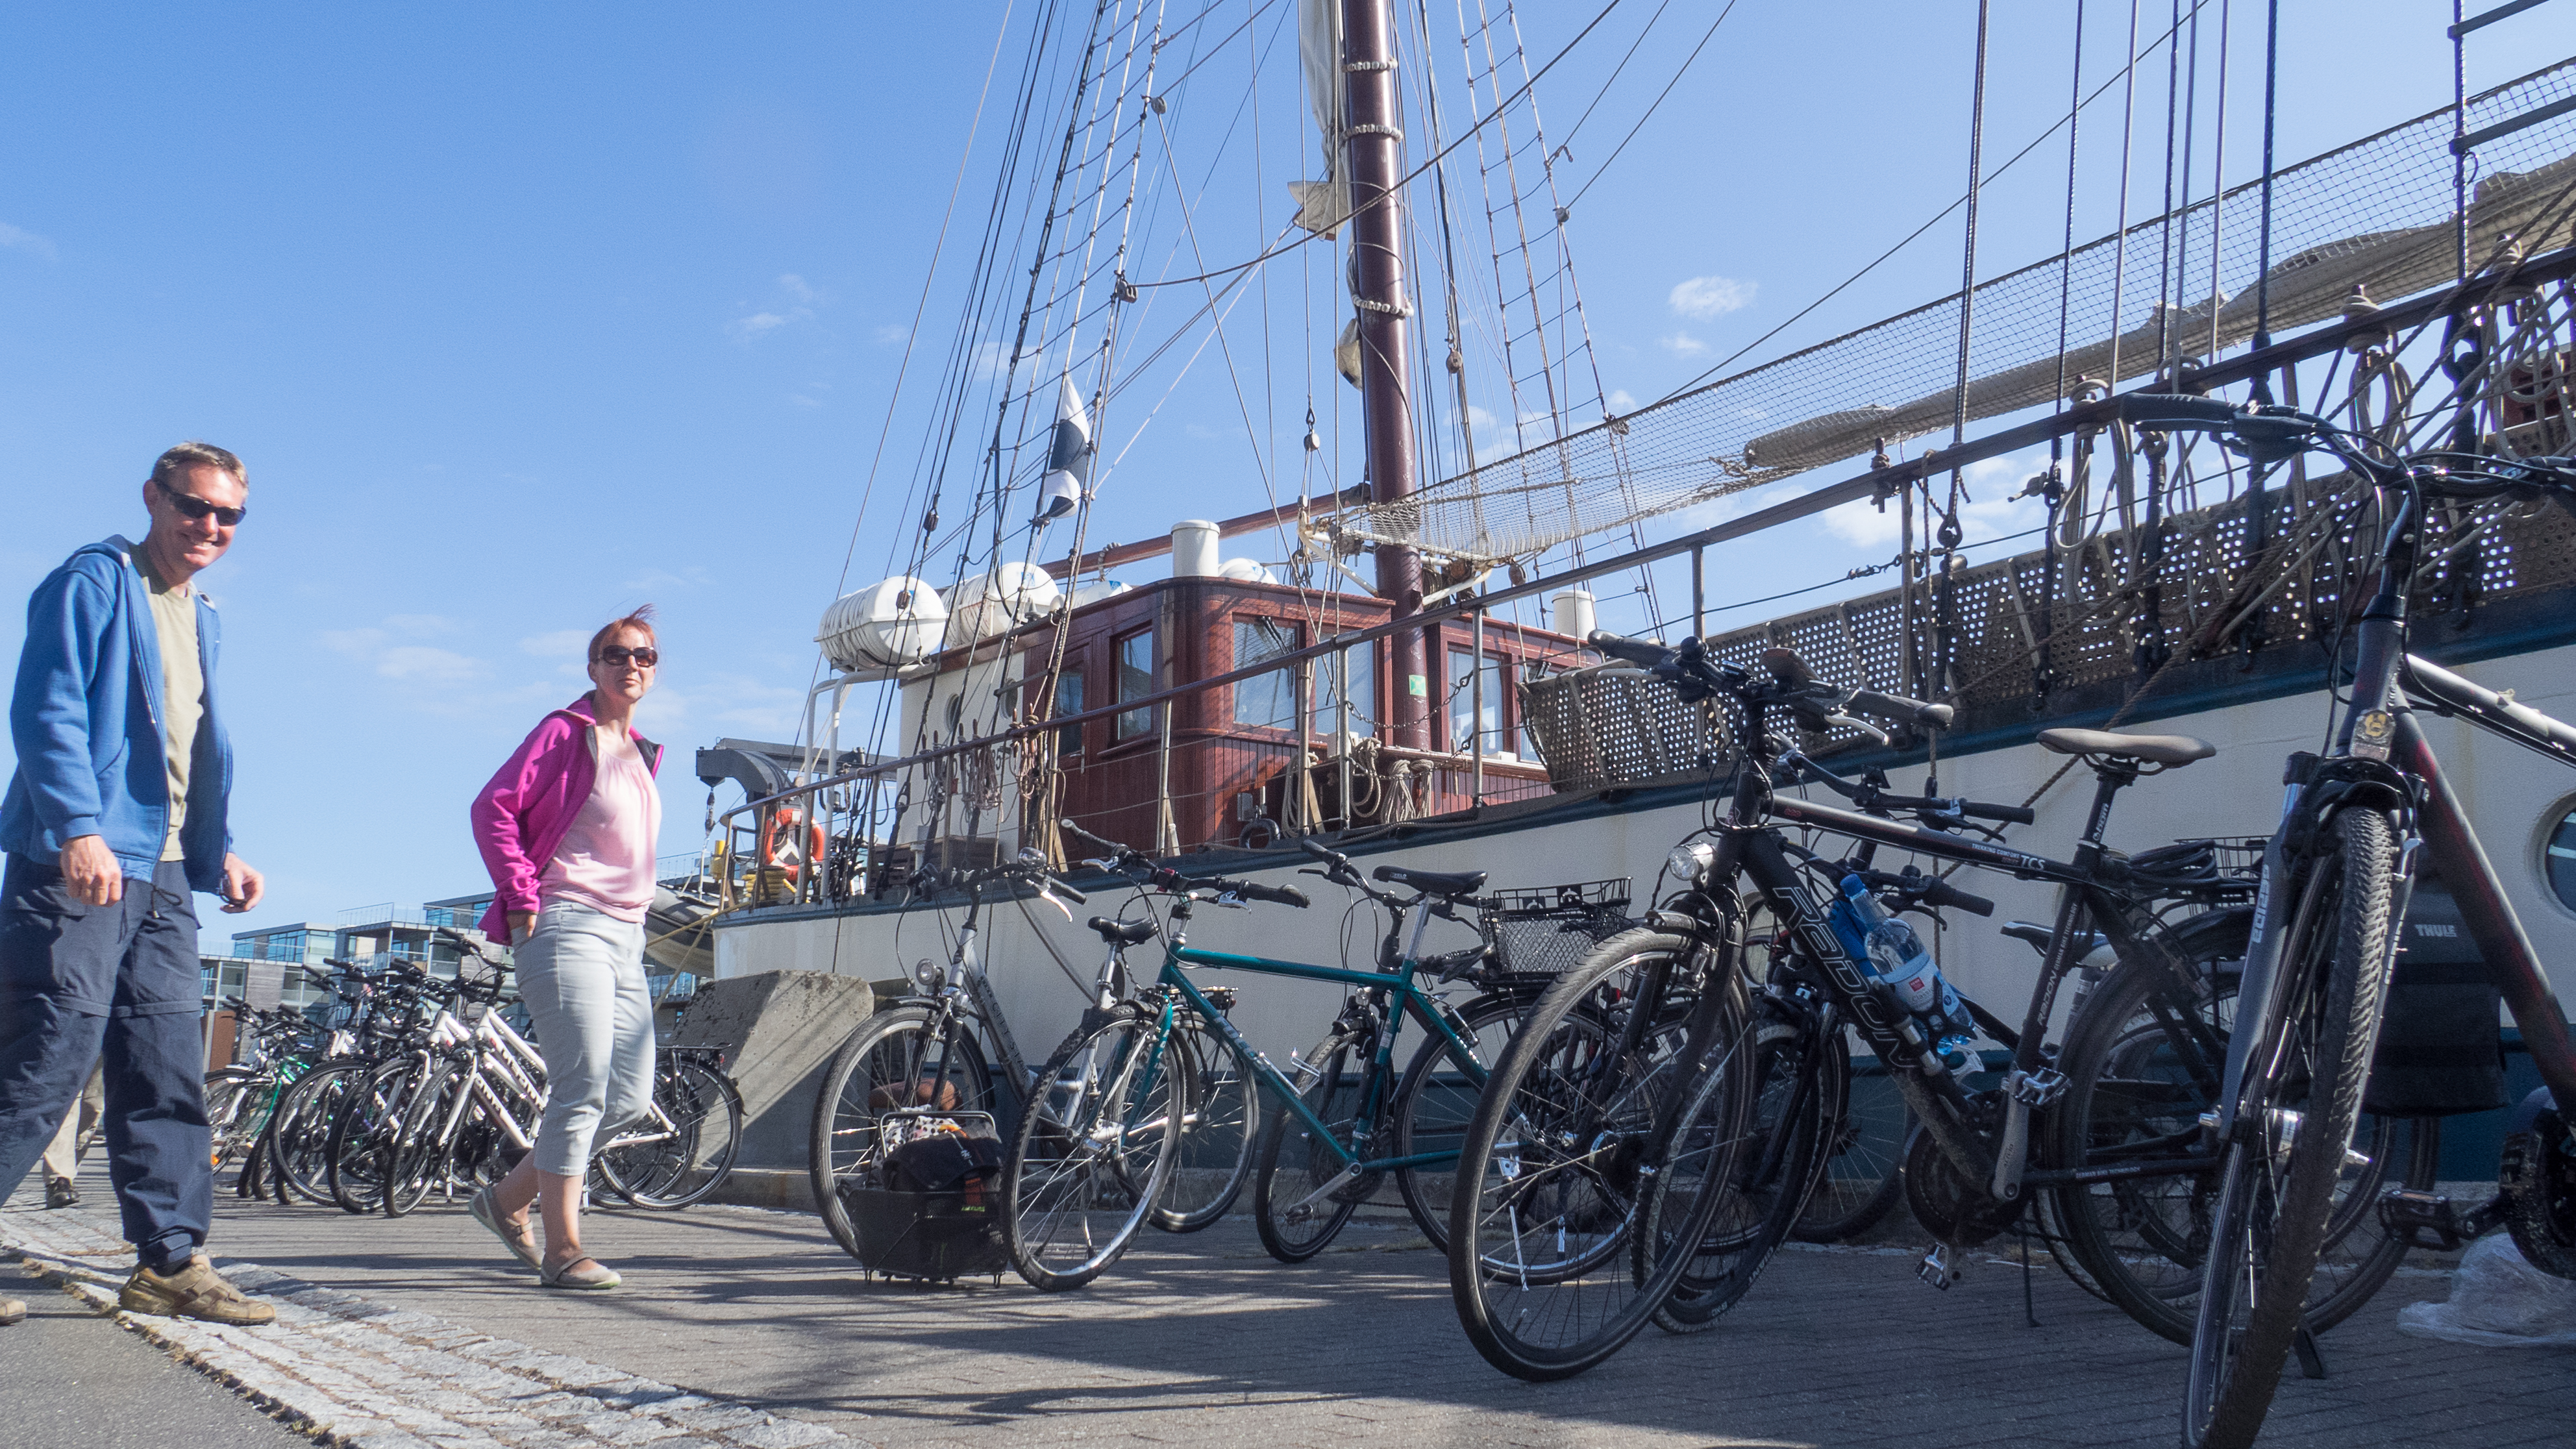 Sail & Bike on Atlantis in the baltic sea